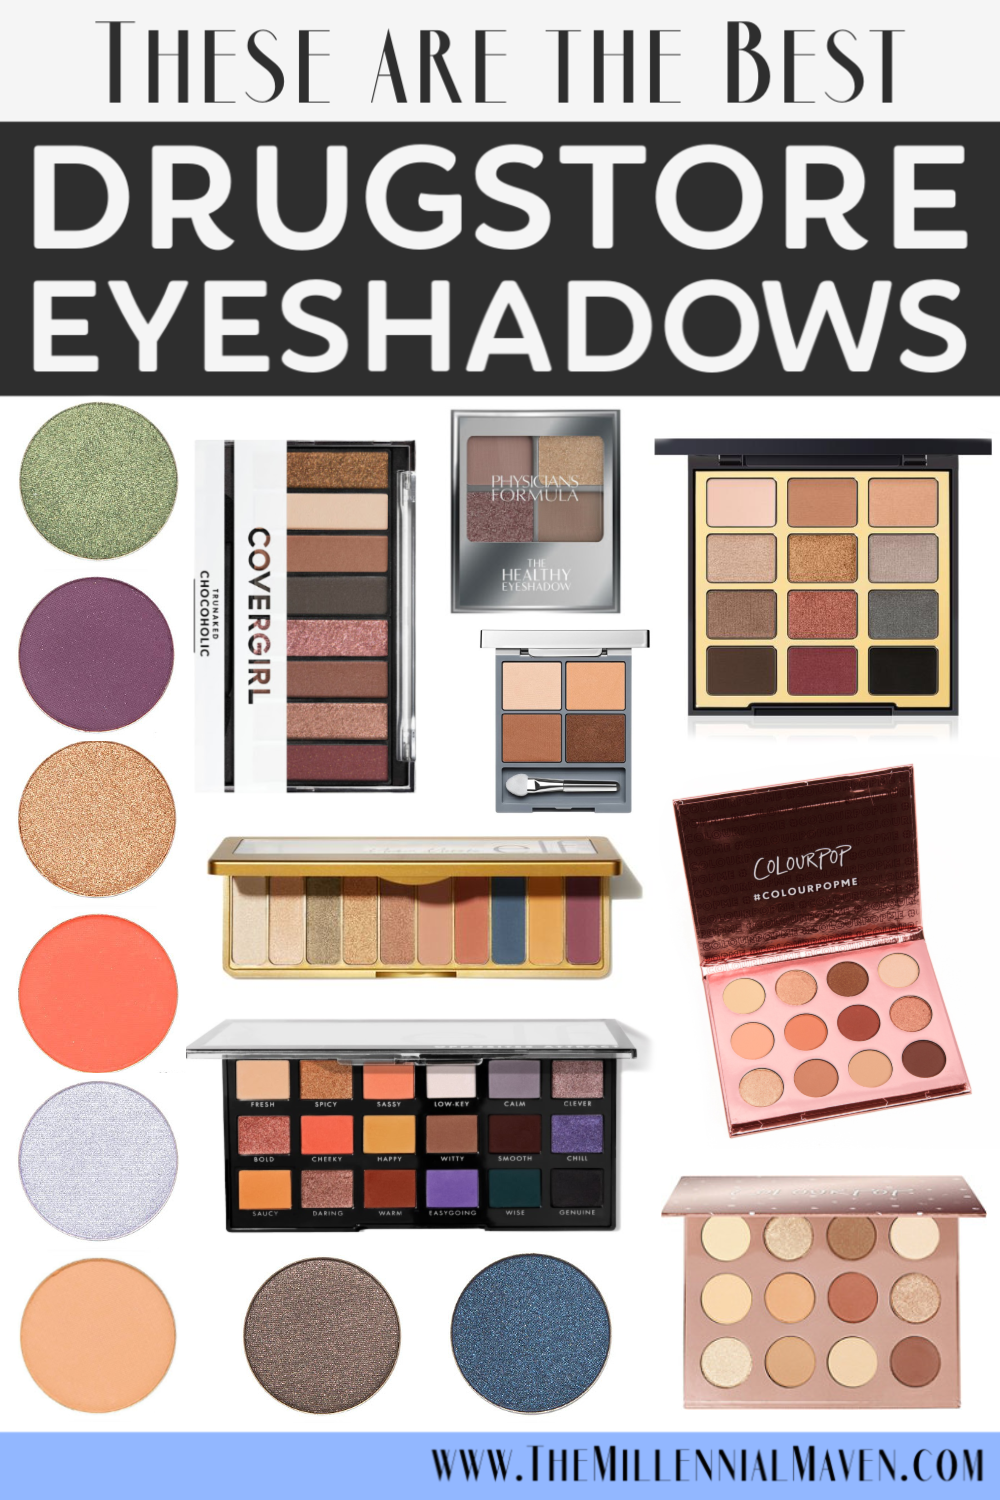 Updated 2020 Top 10 Best Drugstore Eyeshadows Singles Palettes Best Drugstore Makeup 2020 The Millennial Maven Best Drugstore Makeup Best Eyeshadow Best Eyeshadow Palette